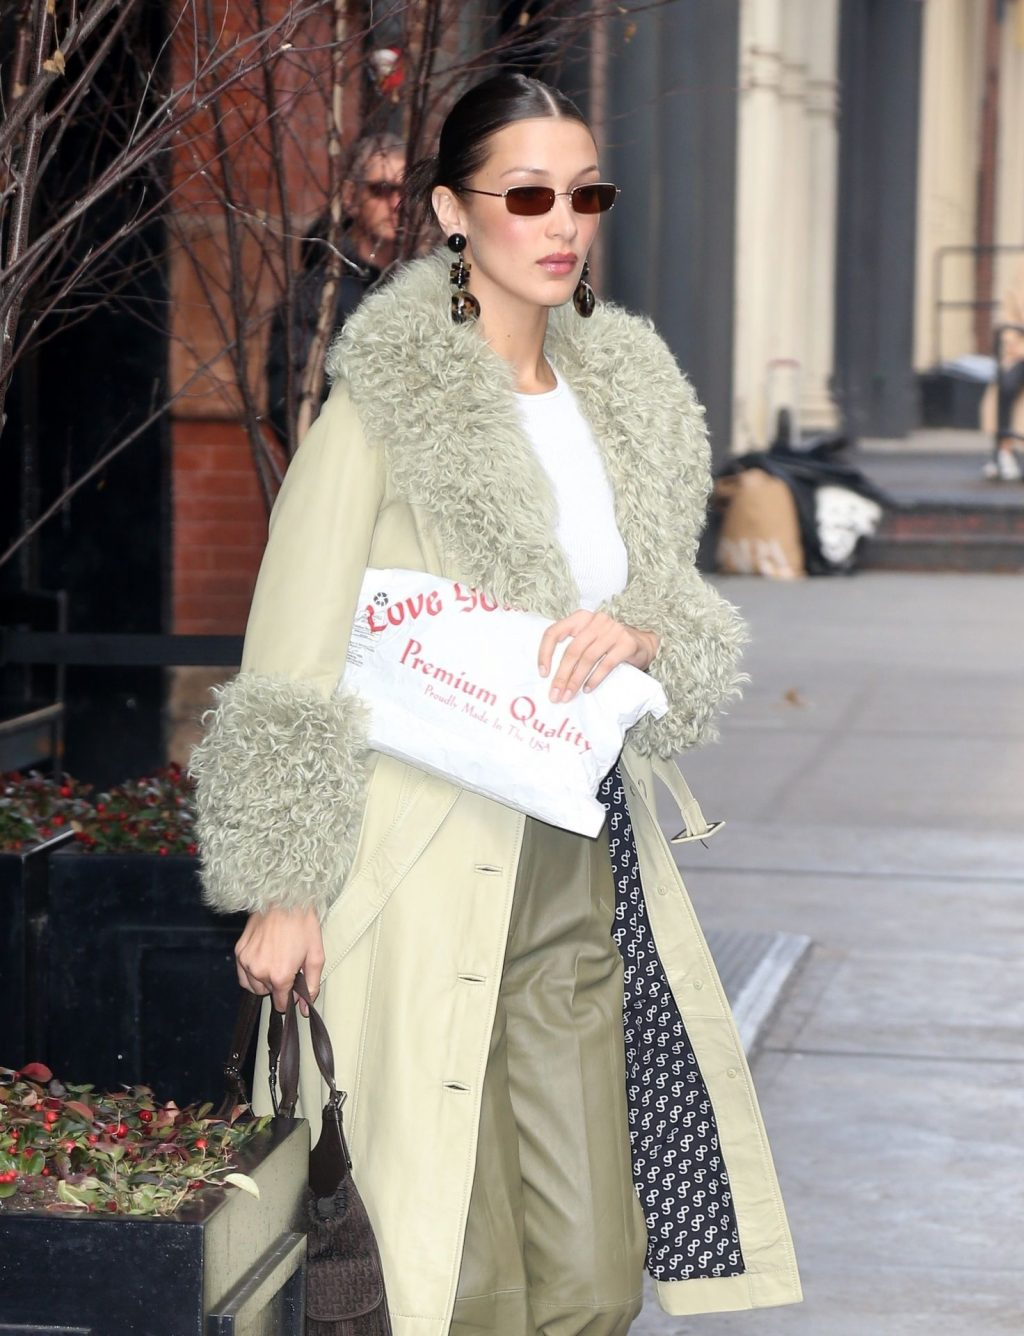 Braless Bella Hadid Arrives at the Park Avenue Armory for the Marc Jacobs Fashion Show (59 Photos)